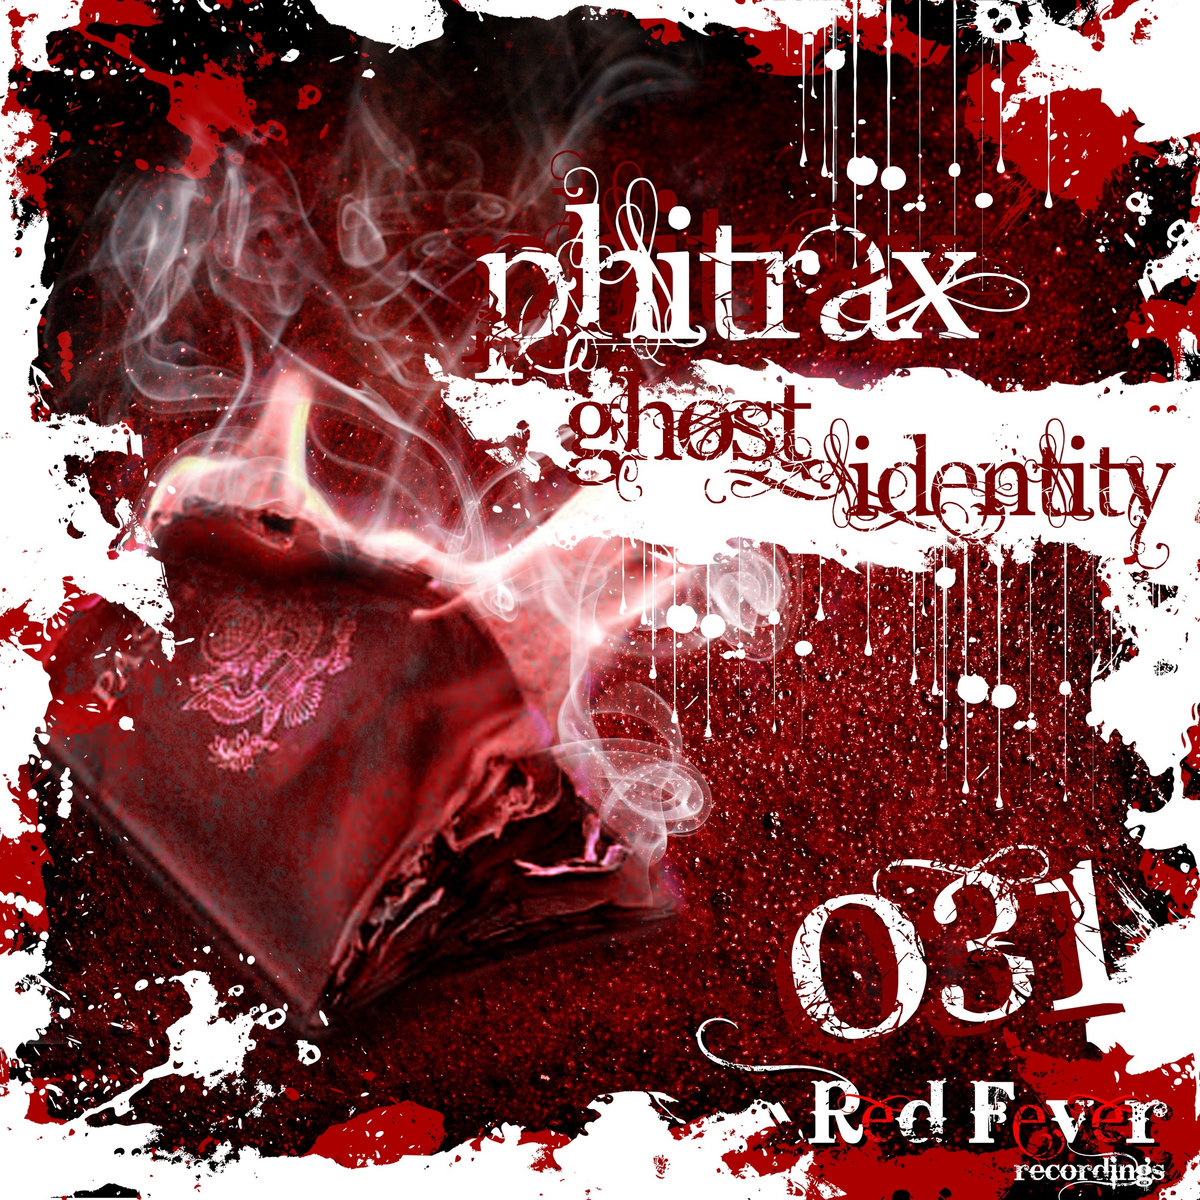 Phitrax - Ghost Identity (artwork)